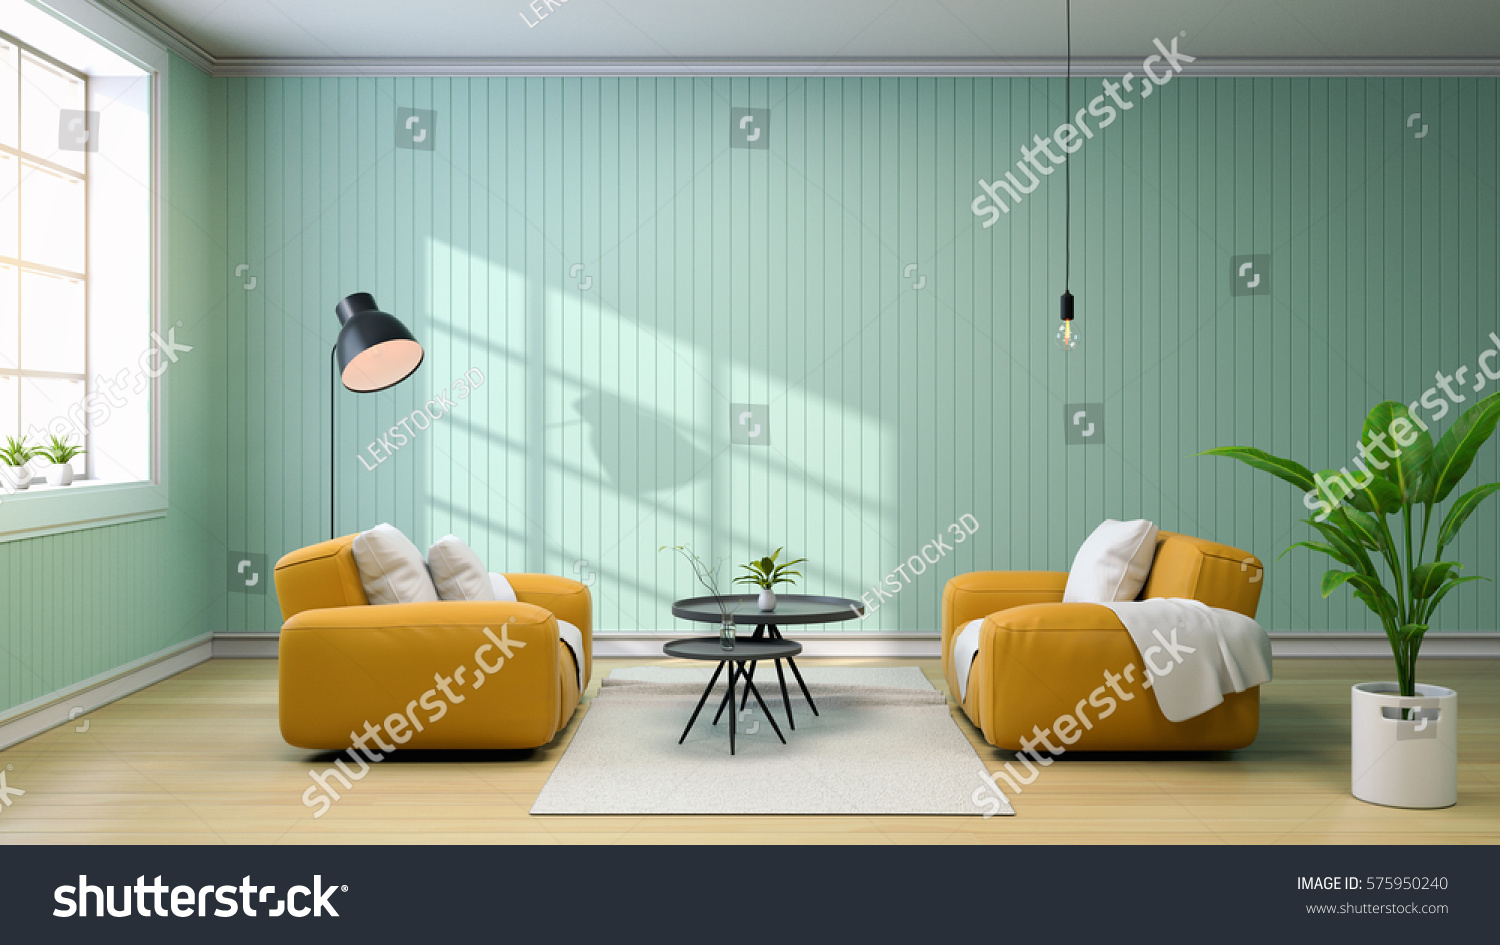 Interior Of Living Room With Yellow Sofa And Black Coffee Table, Lamps And  Green Wall Part 73